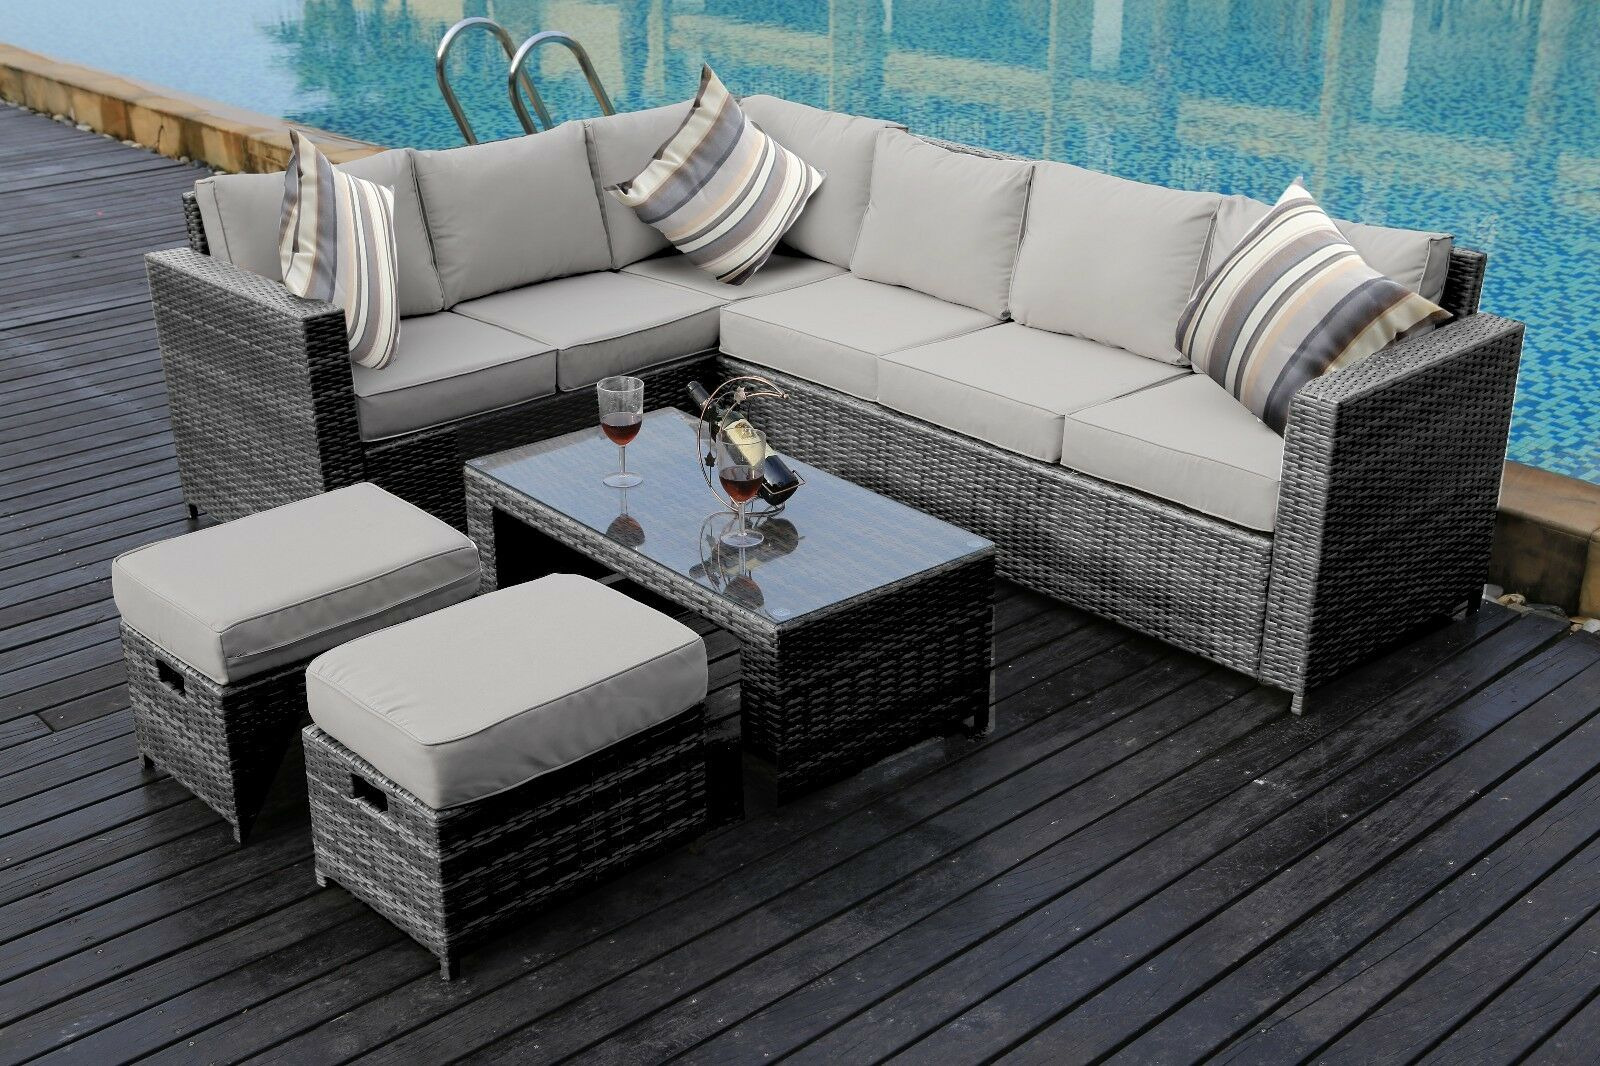 Garden Furniture - NEW Conservatory MODULAR 8 Seater Rattan Corner Sofa Set Garden Furniture grey